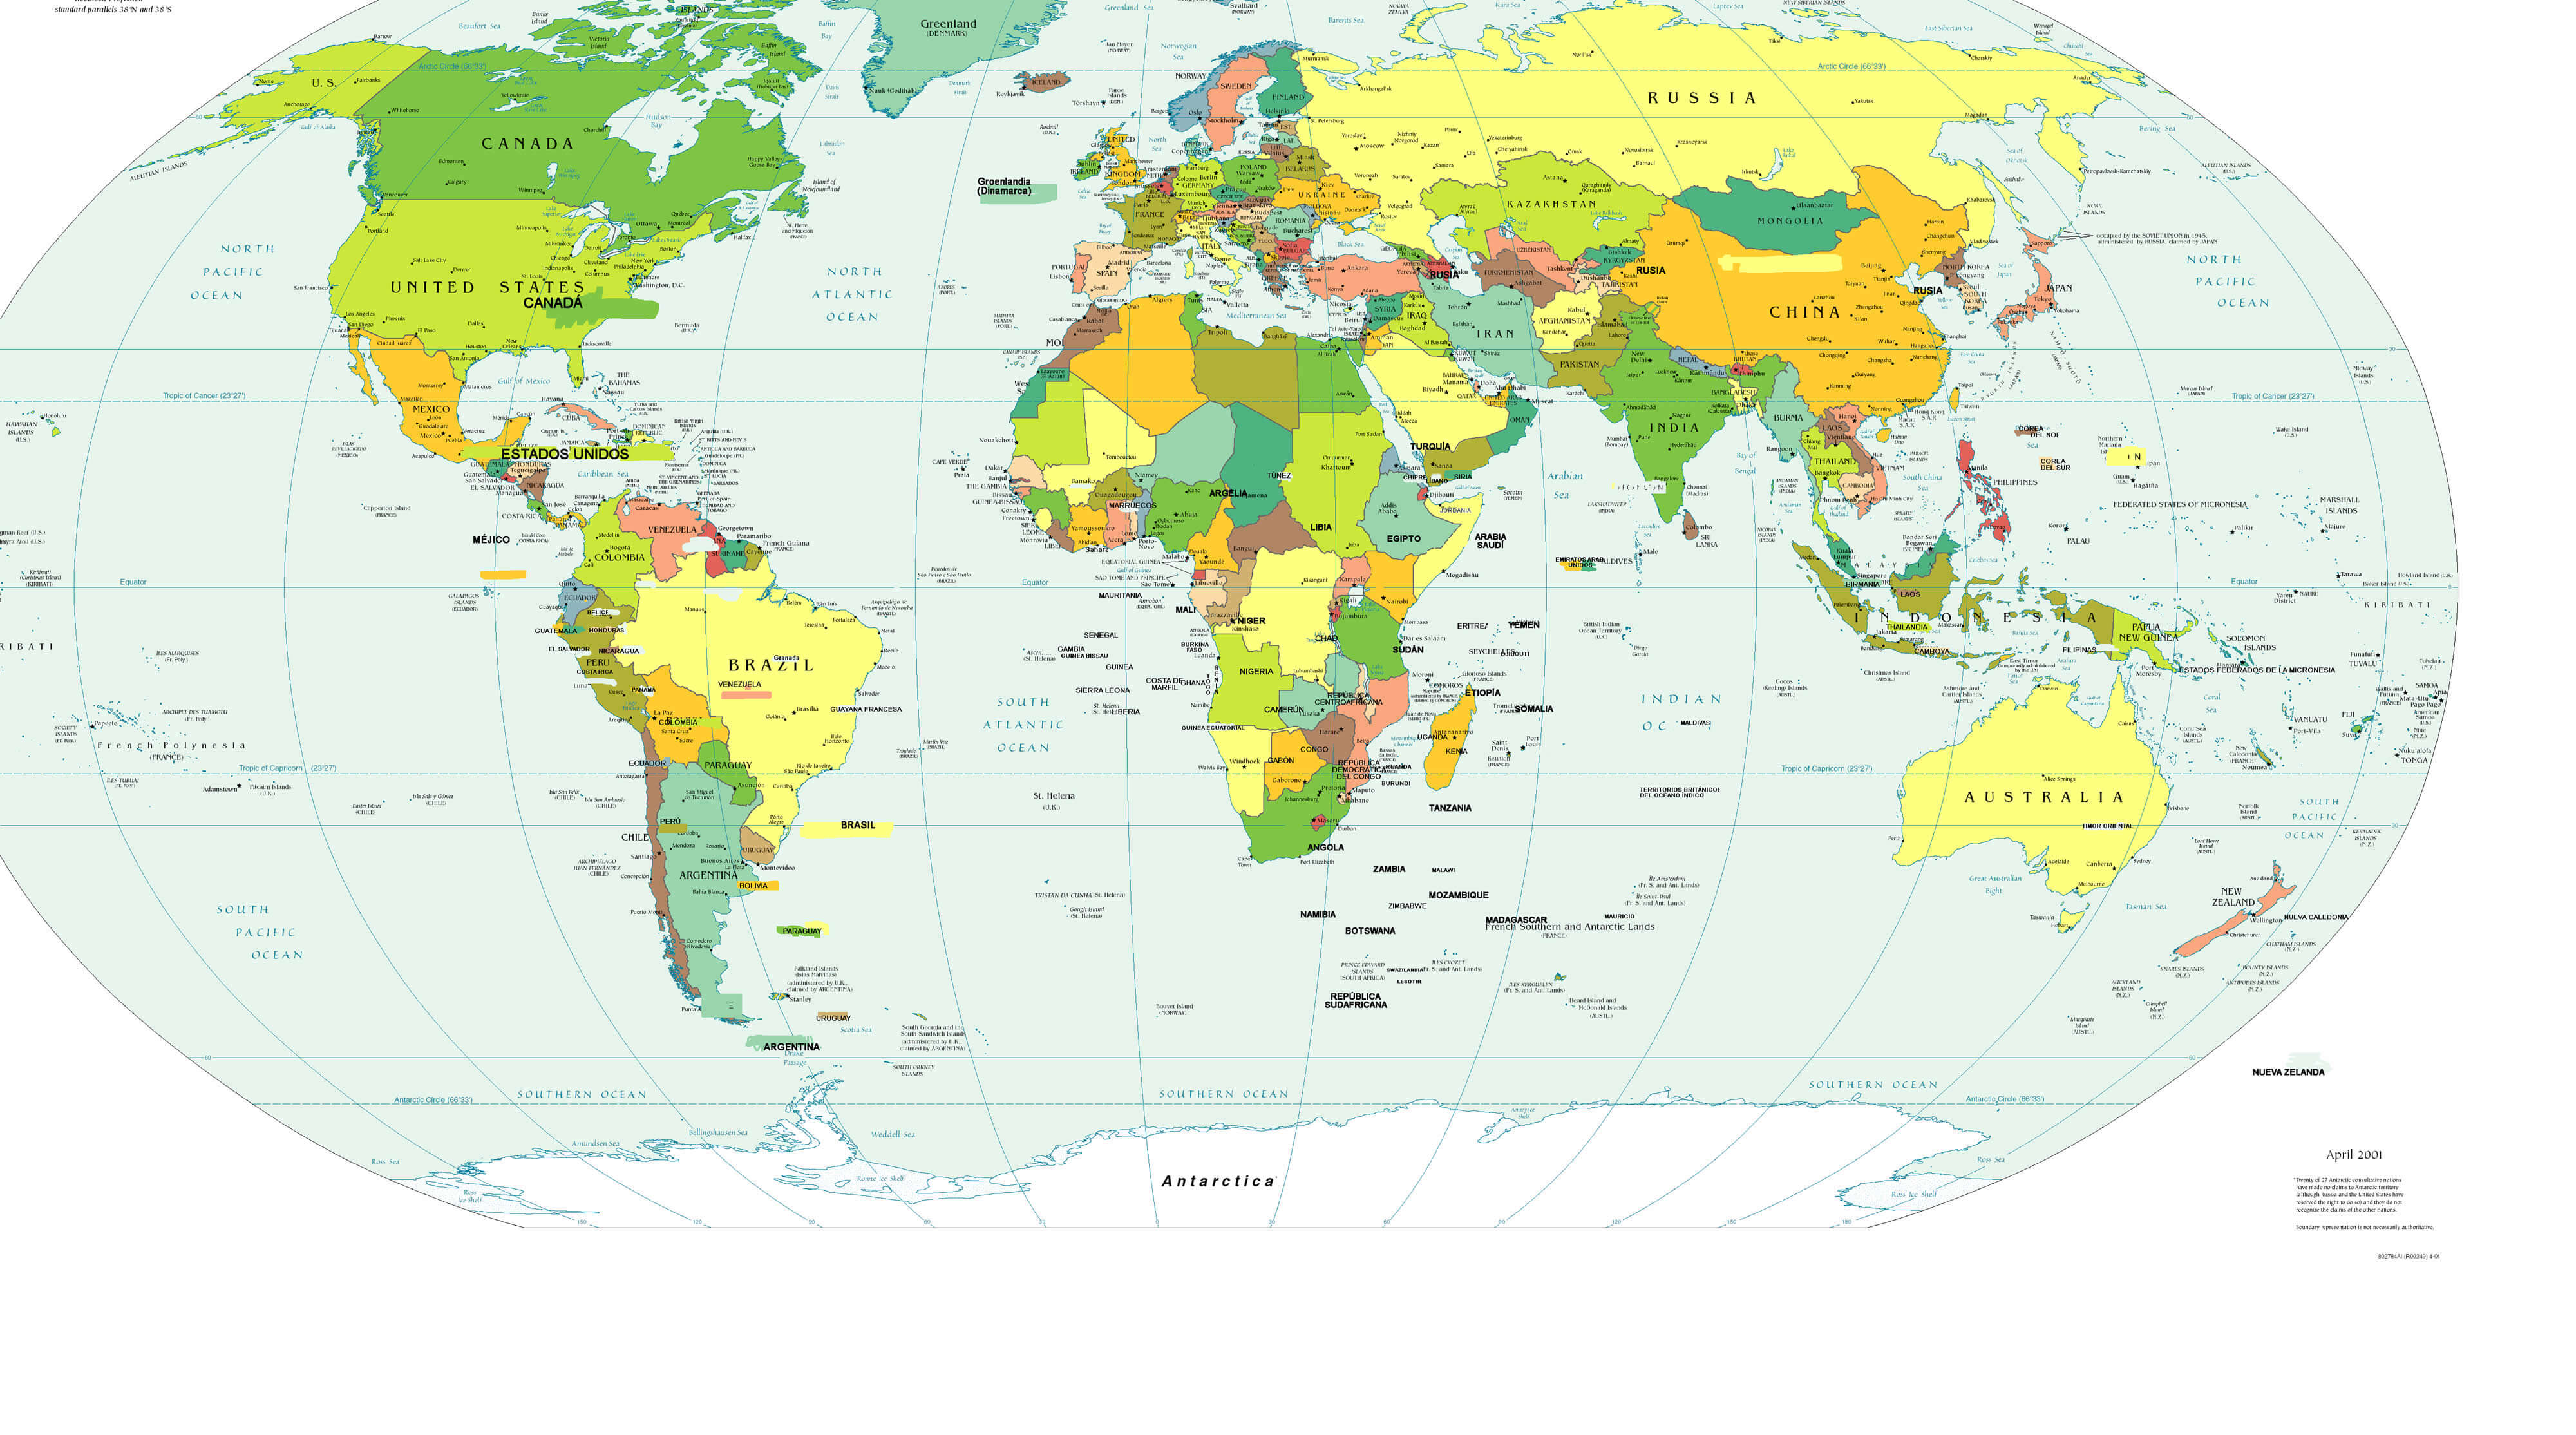 World Map in Spanish Language - Guide of the World